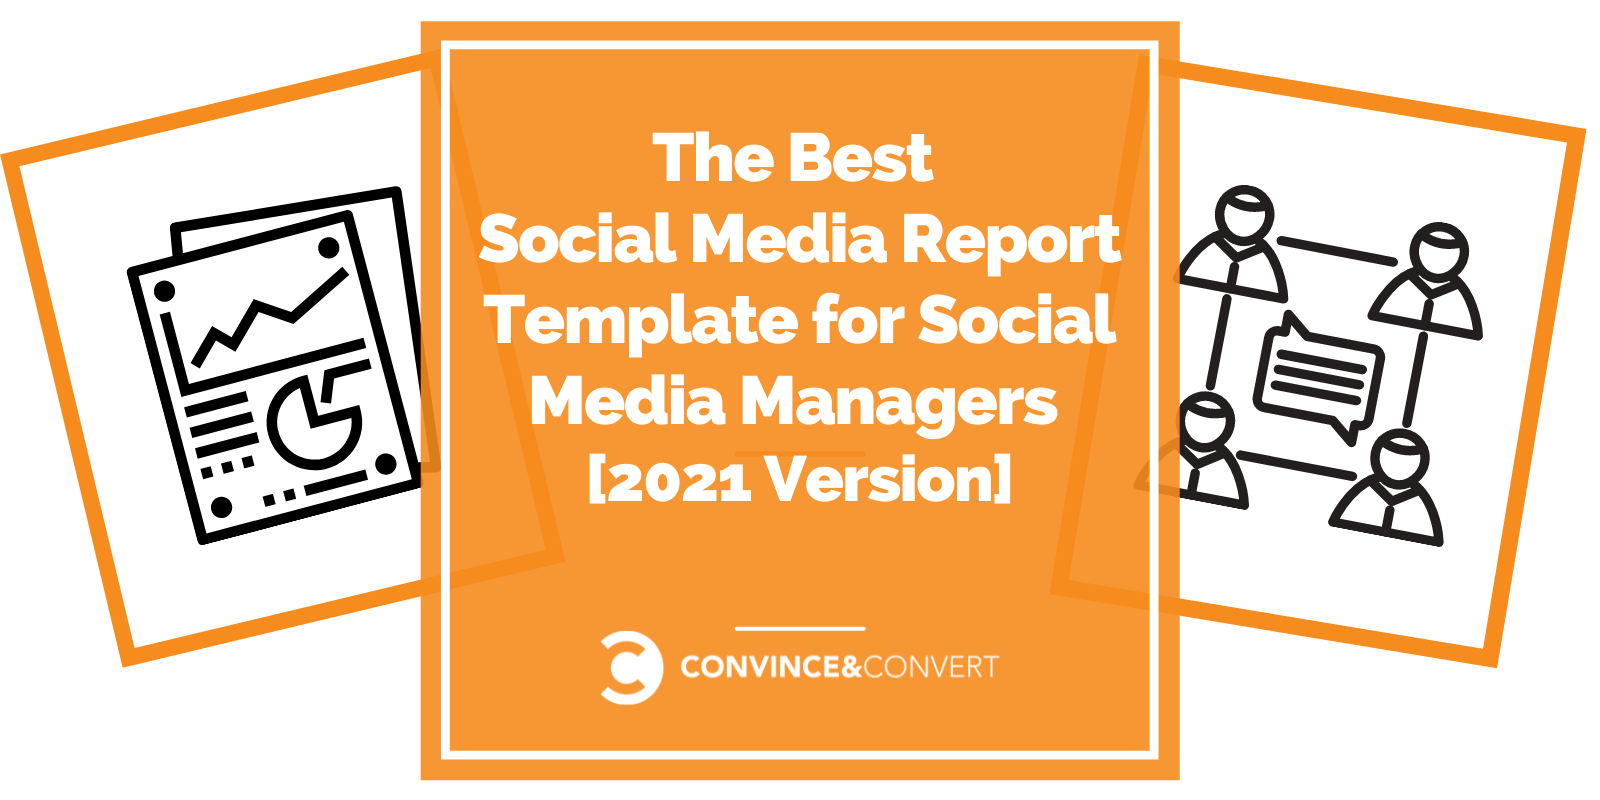 The Easiest Social Media File Template for Social Media Managers [2021 Version]